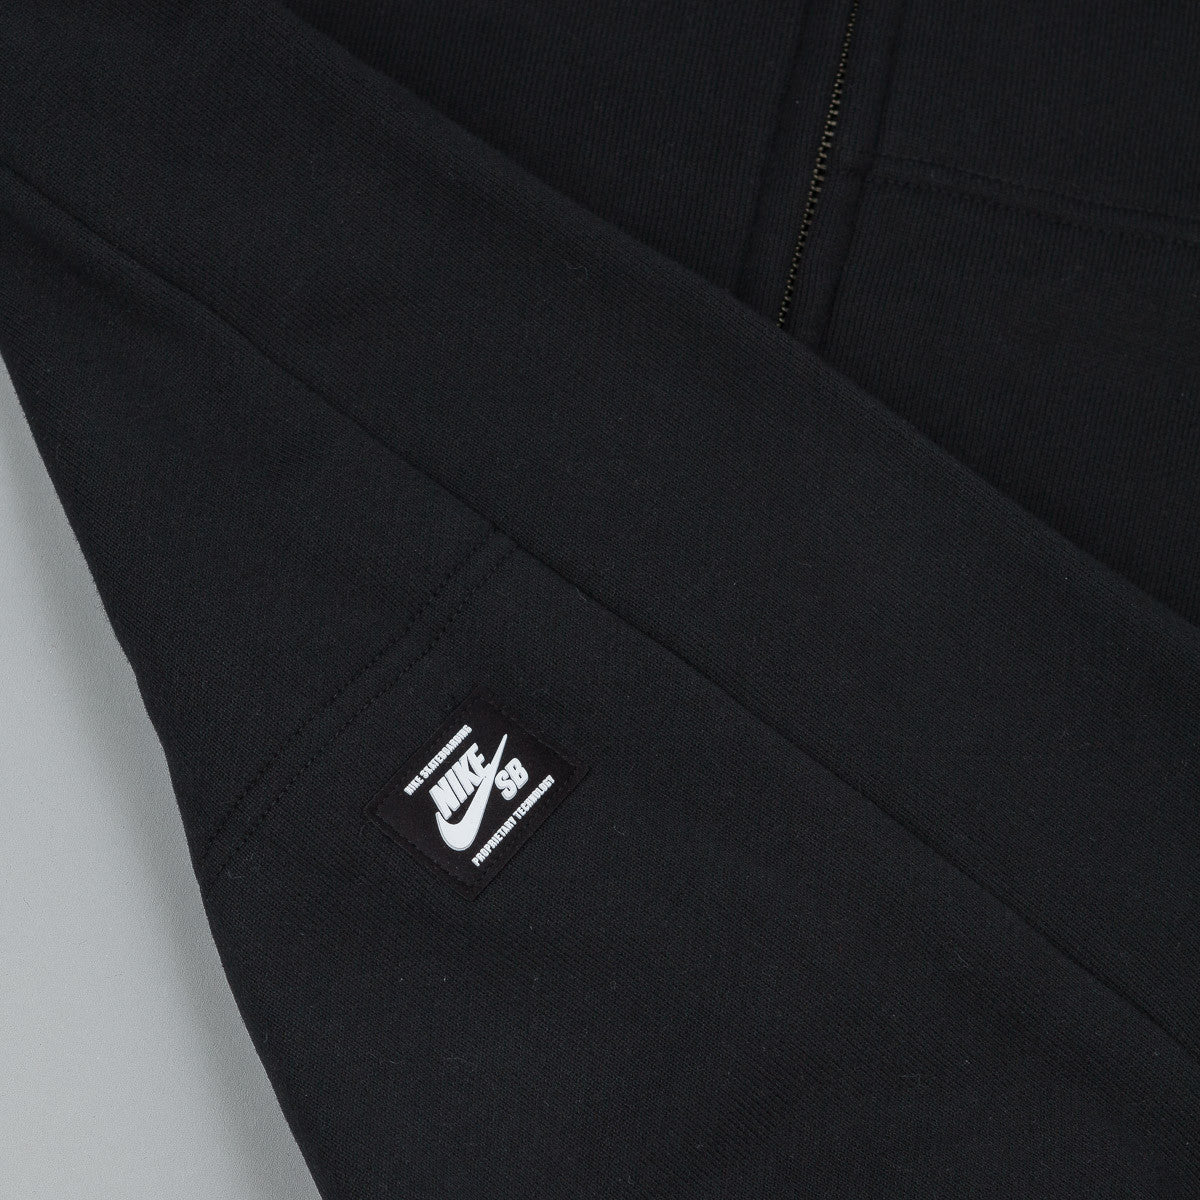 Nike SB Everett Graphic Zip Hooded Sweatshirt - Black / Black